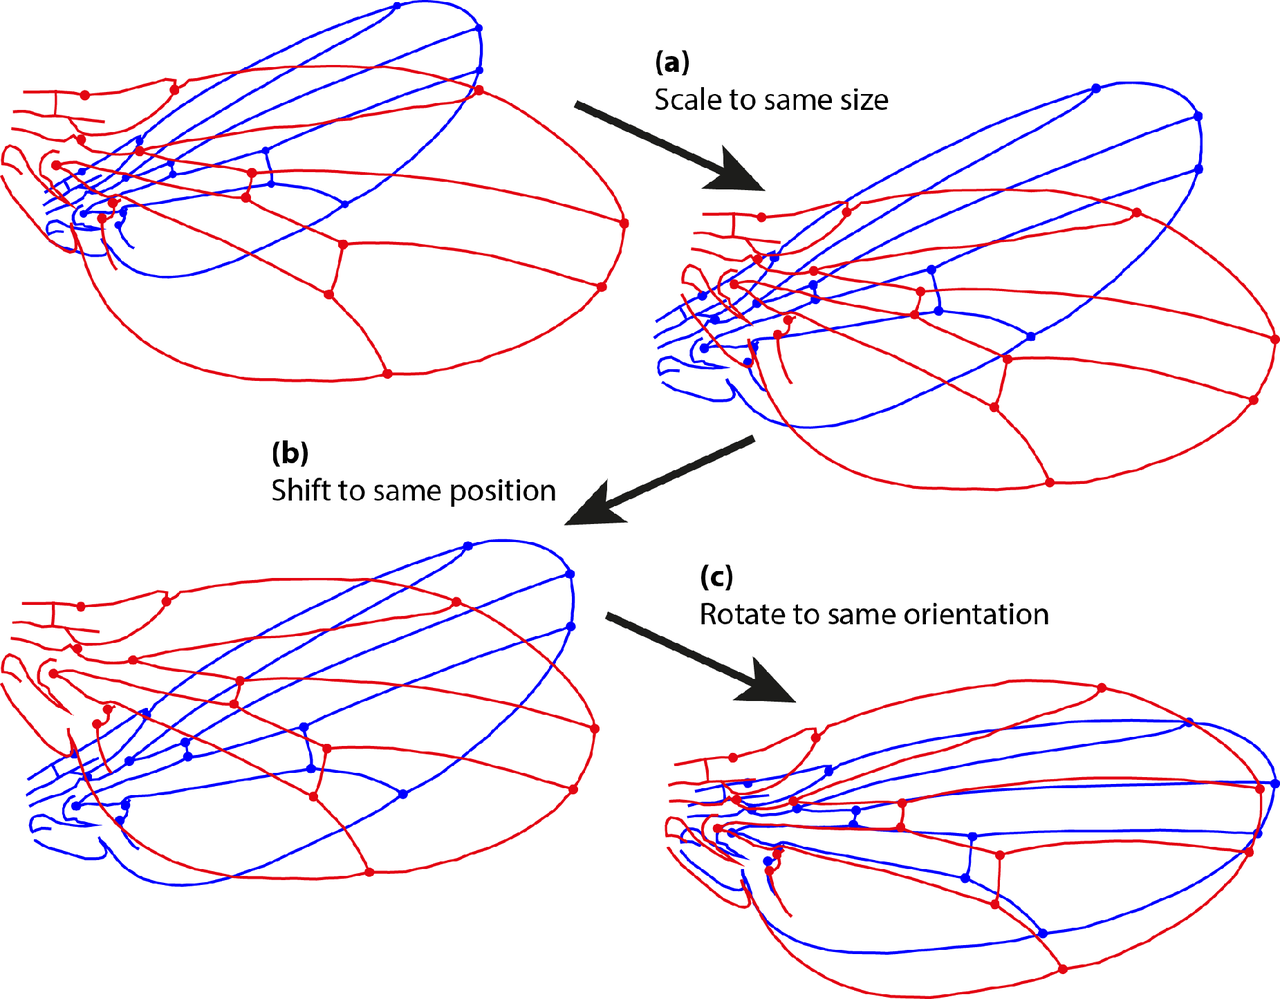 Procrustes superimposition. The figure shows the three transformation steps of an ordinary Procrustes fit for two configurations of landmarks. (a) Scaling of both configurations to the same size; (b) Transposition to the same position of the center of gravity; (c) Rotation to the orientation that provides the minimum sum of squared distances between corresponding landmarks.